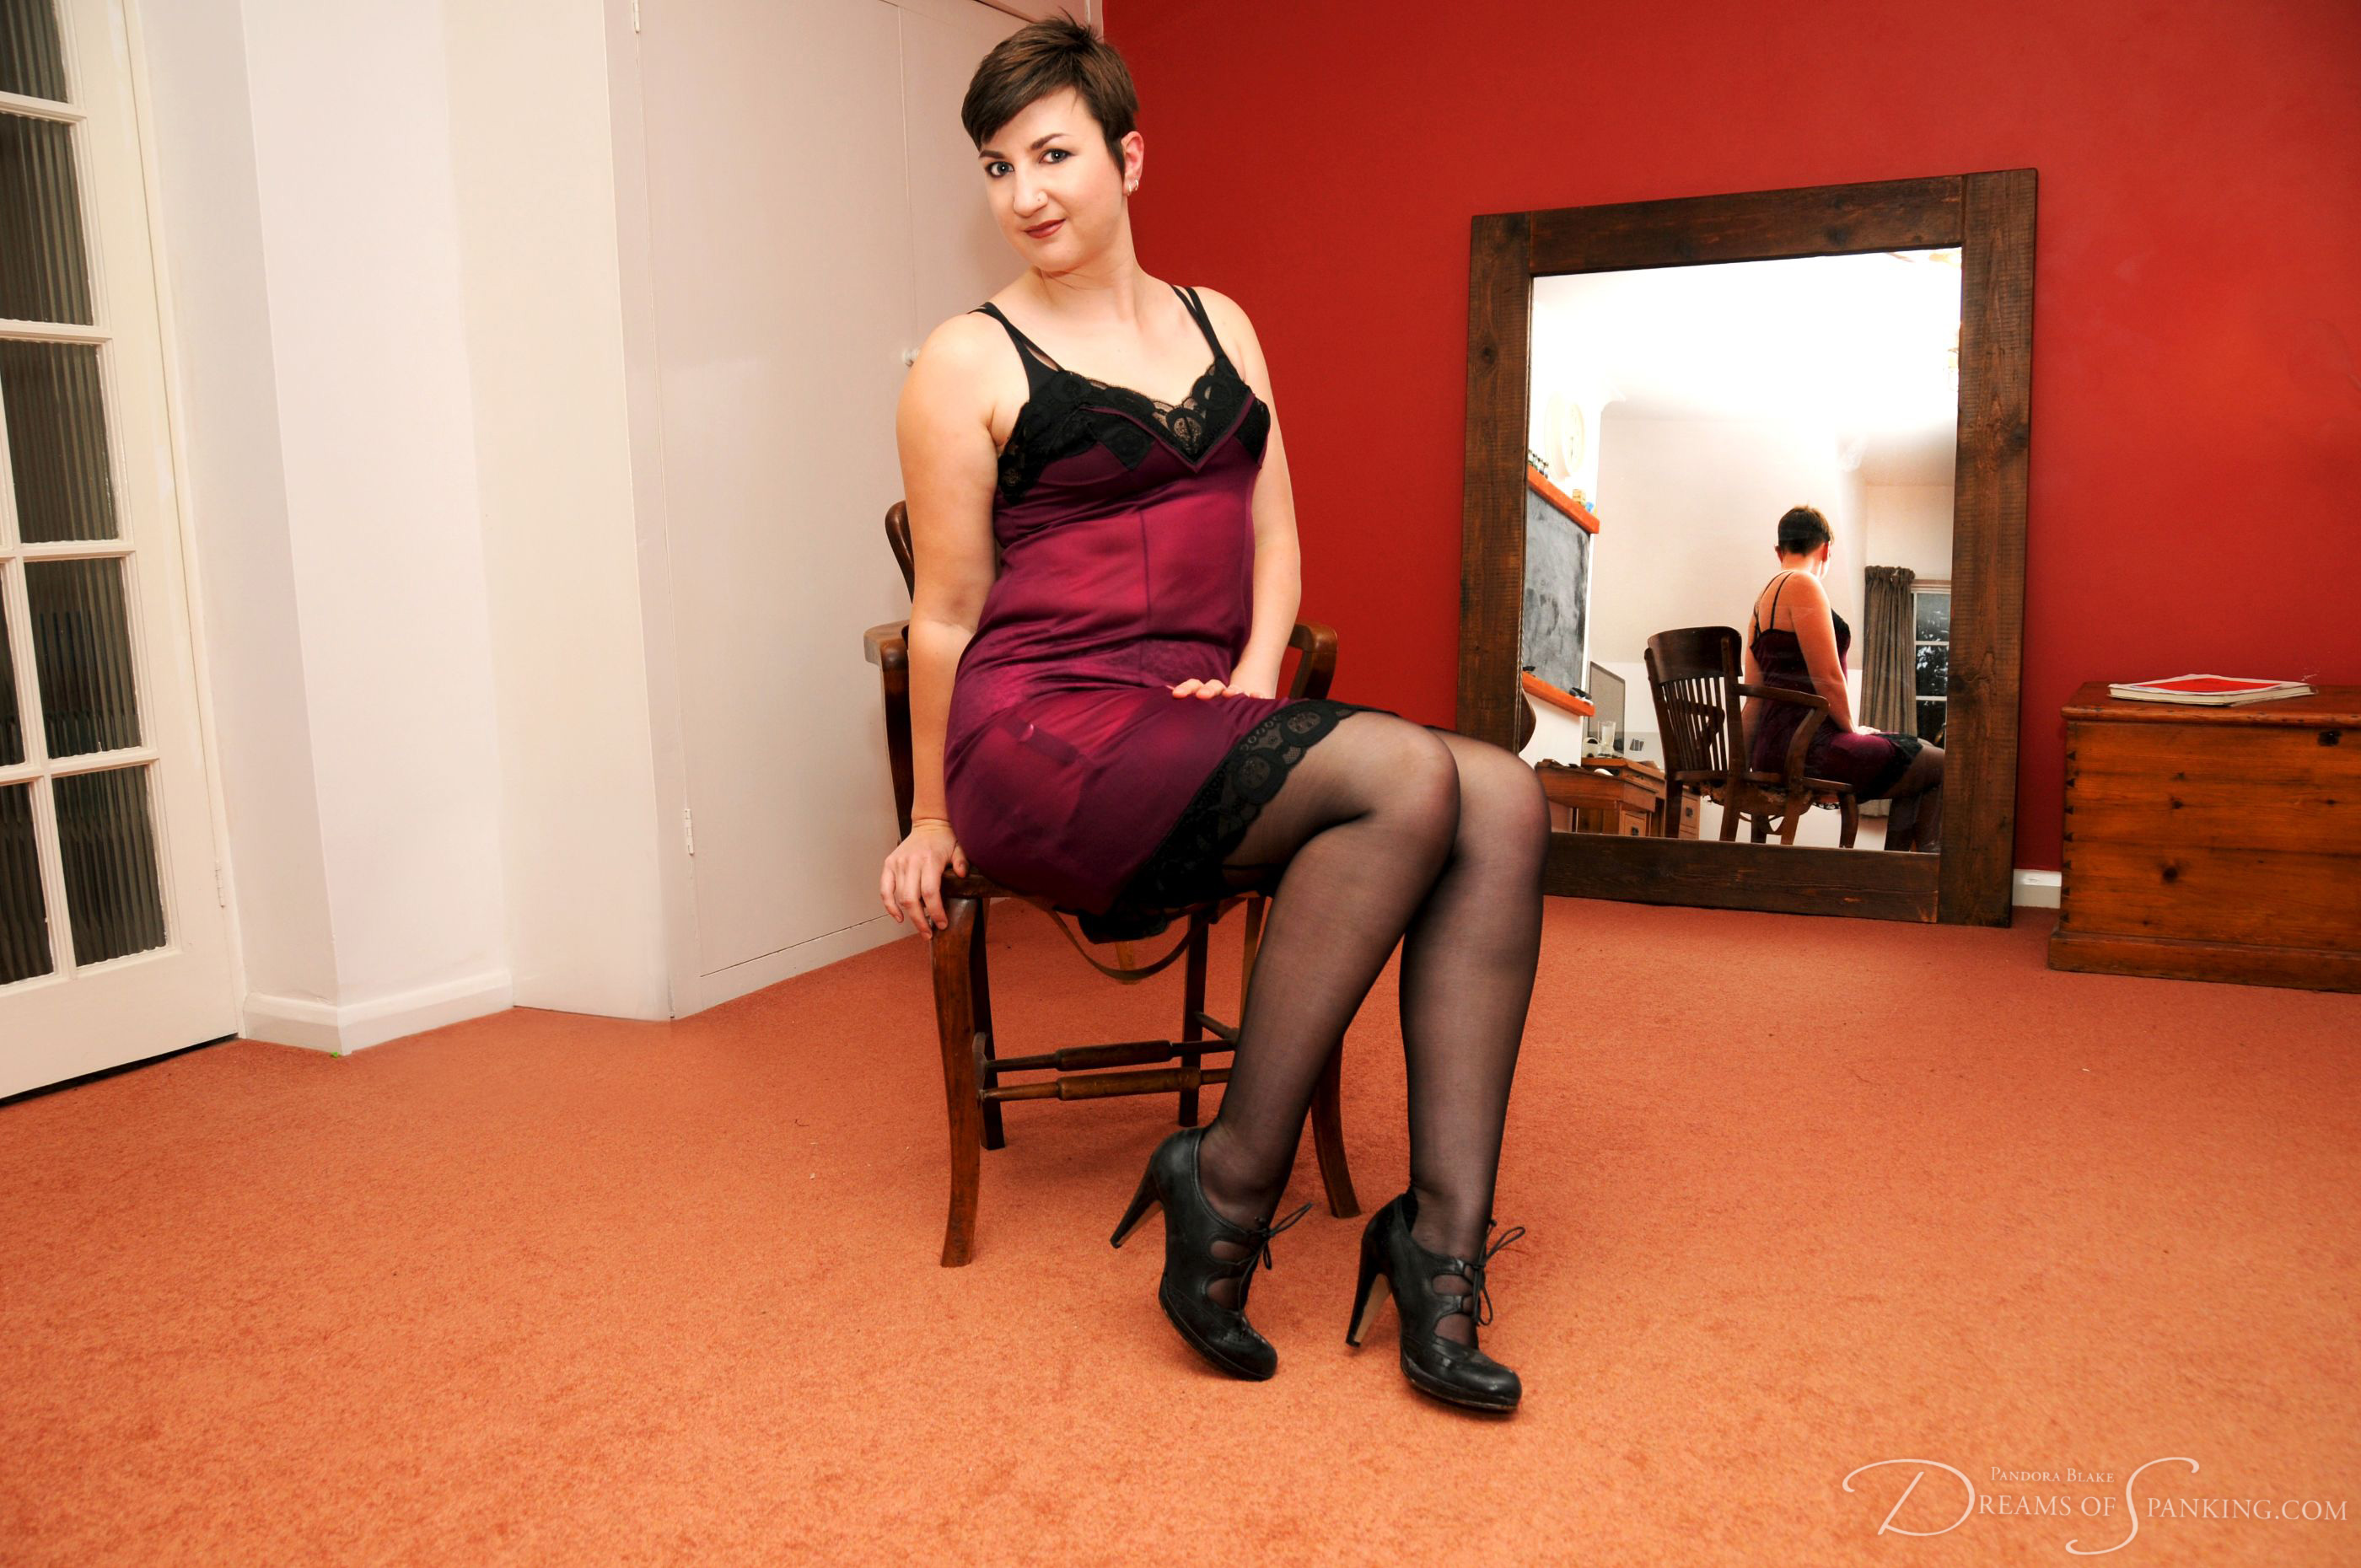 Pandora Blake shows off their high heels and stockings at Dreams of Spanking